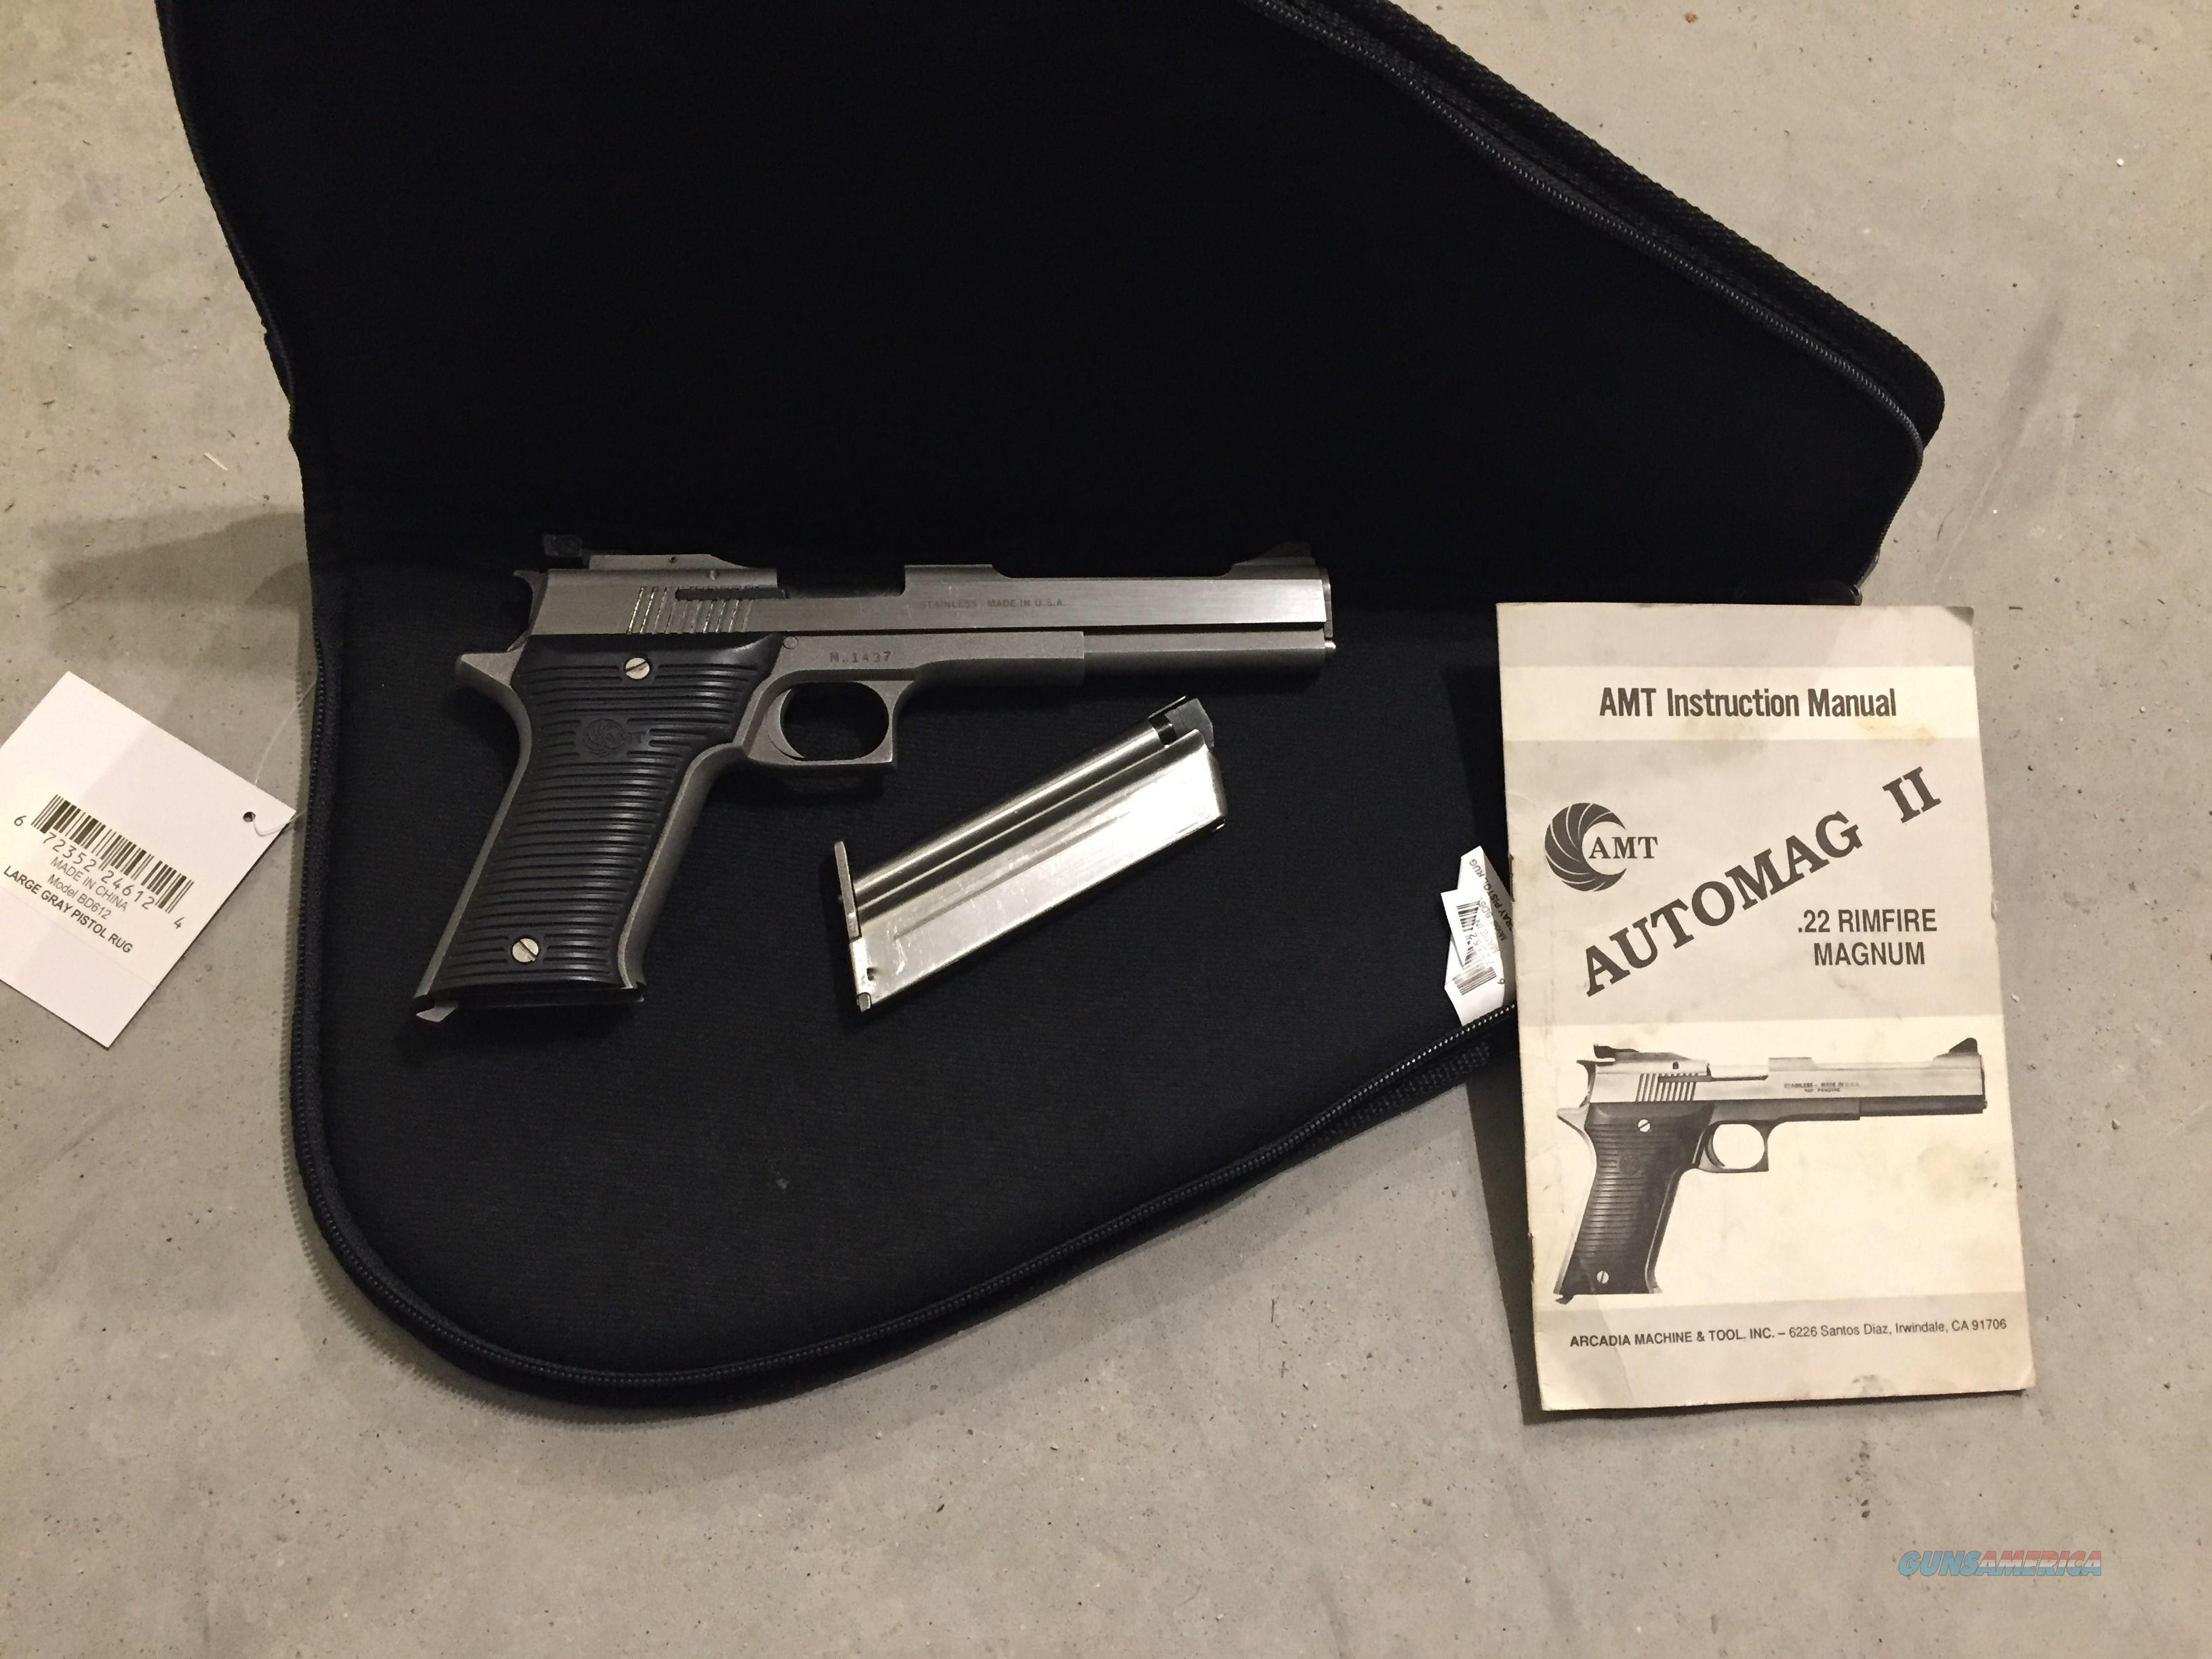 AMT Automag II in .22WMR (.22 Magnum) Stainless barrel and slide excellent condition in soft case  Guns > Pistols > AMT Pistols > Other